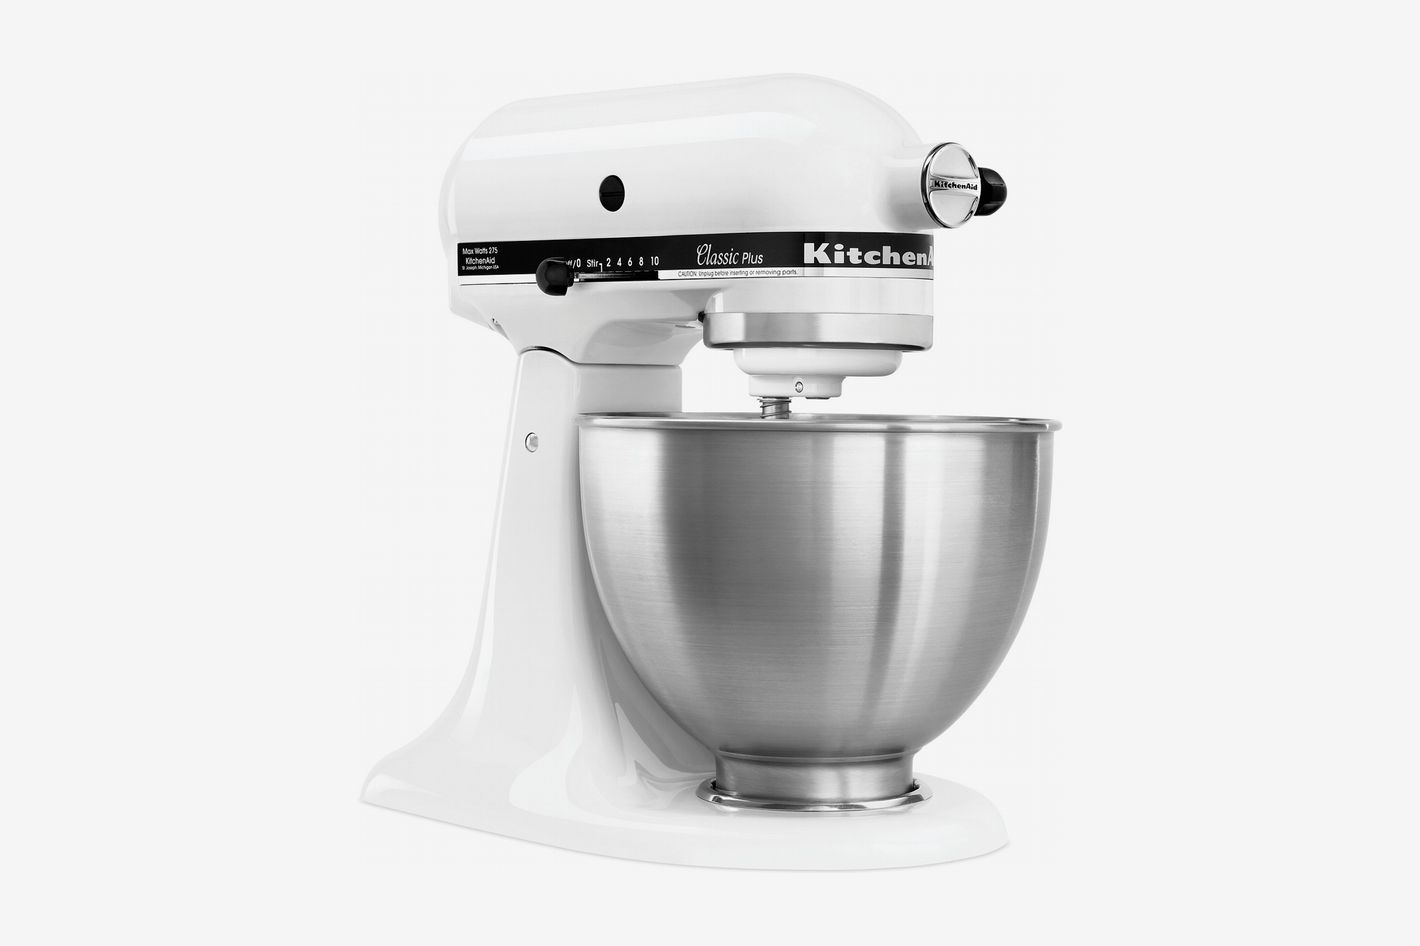 KitchenAid 4.5-Quart Classic Plus Stand Mixer